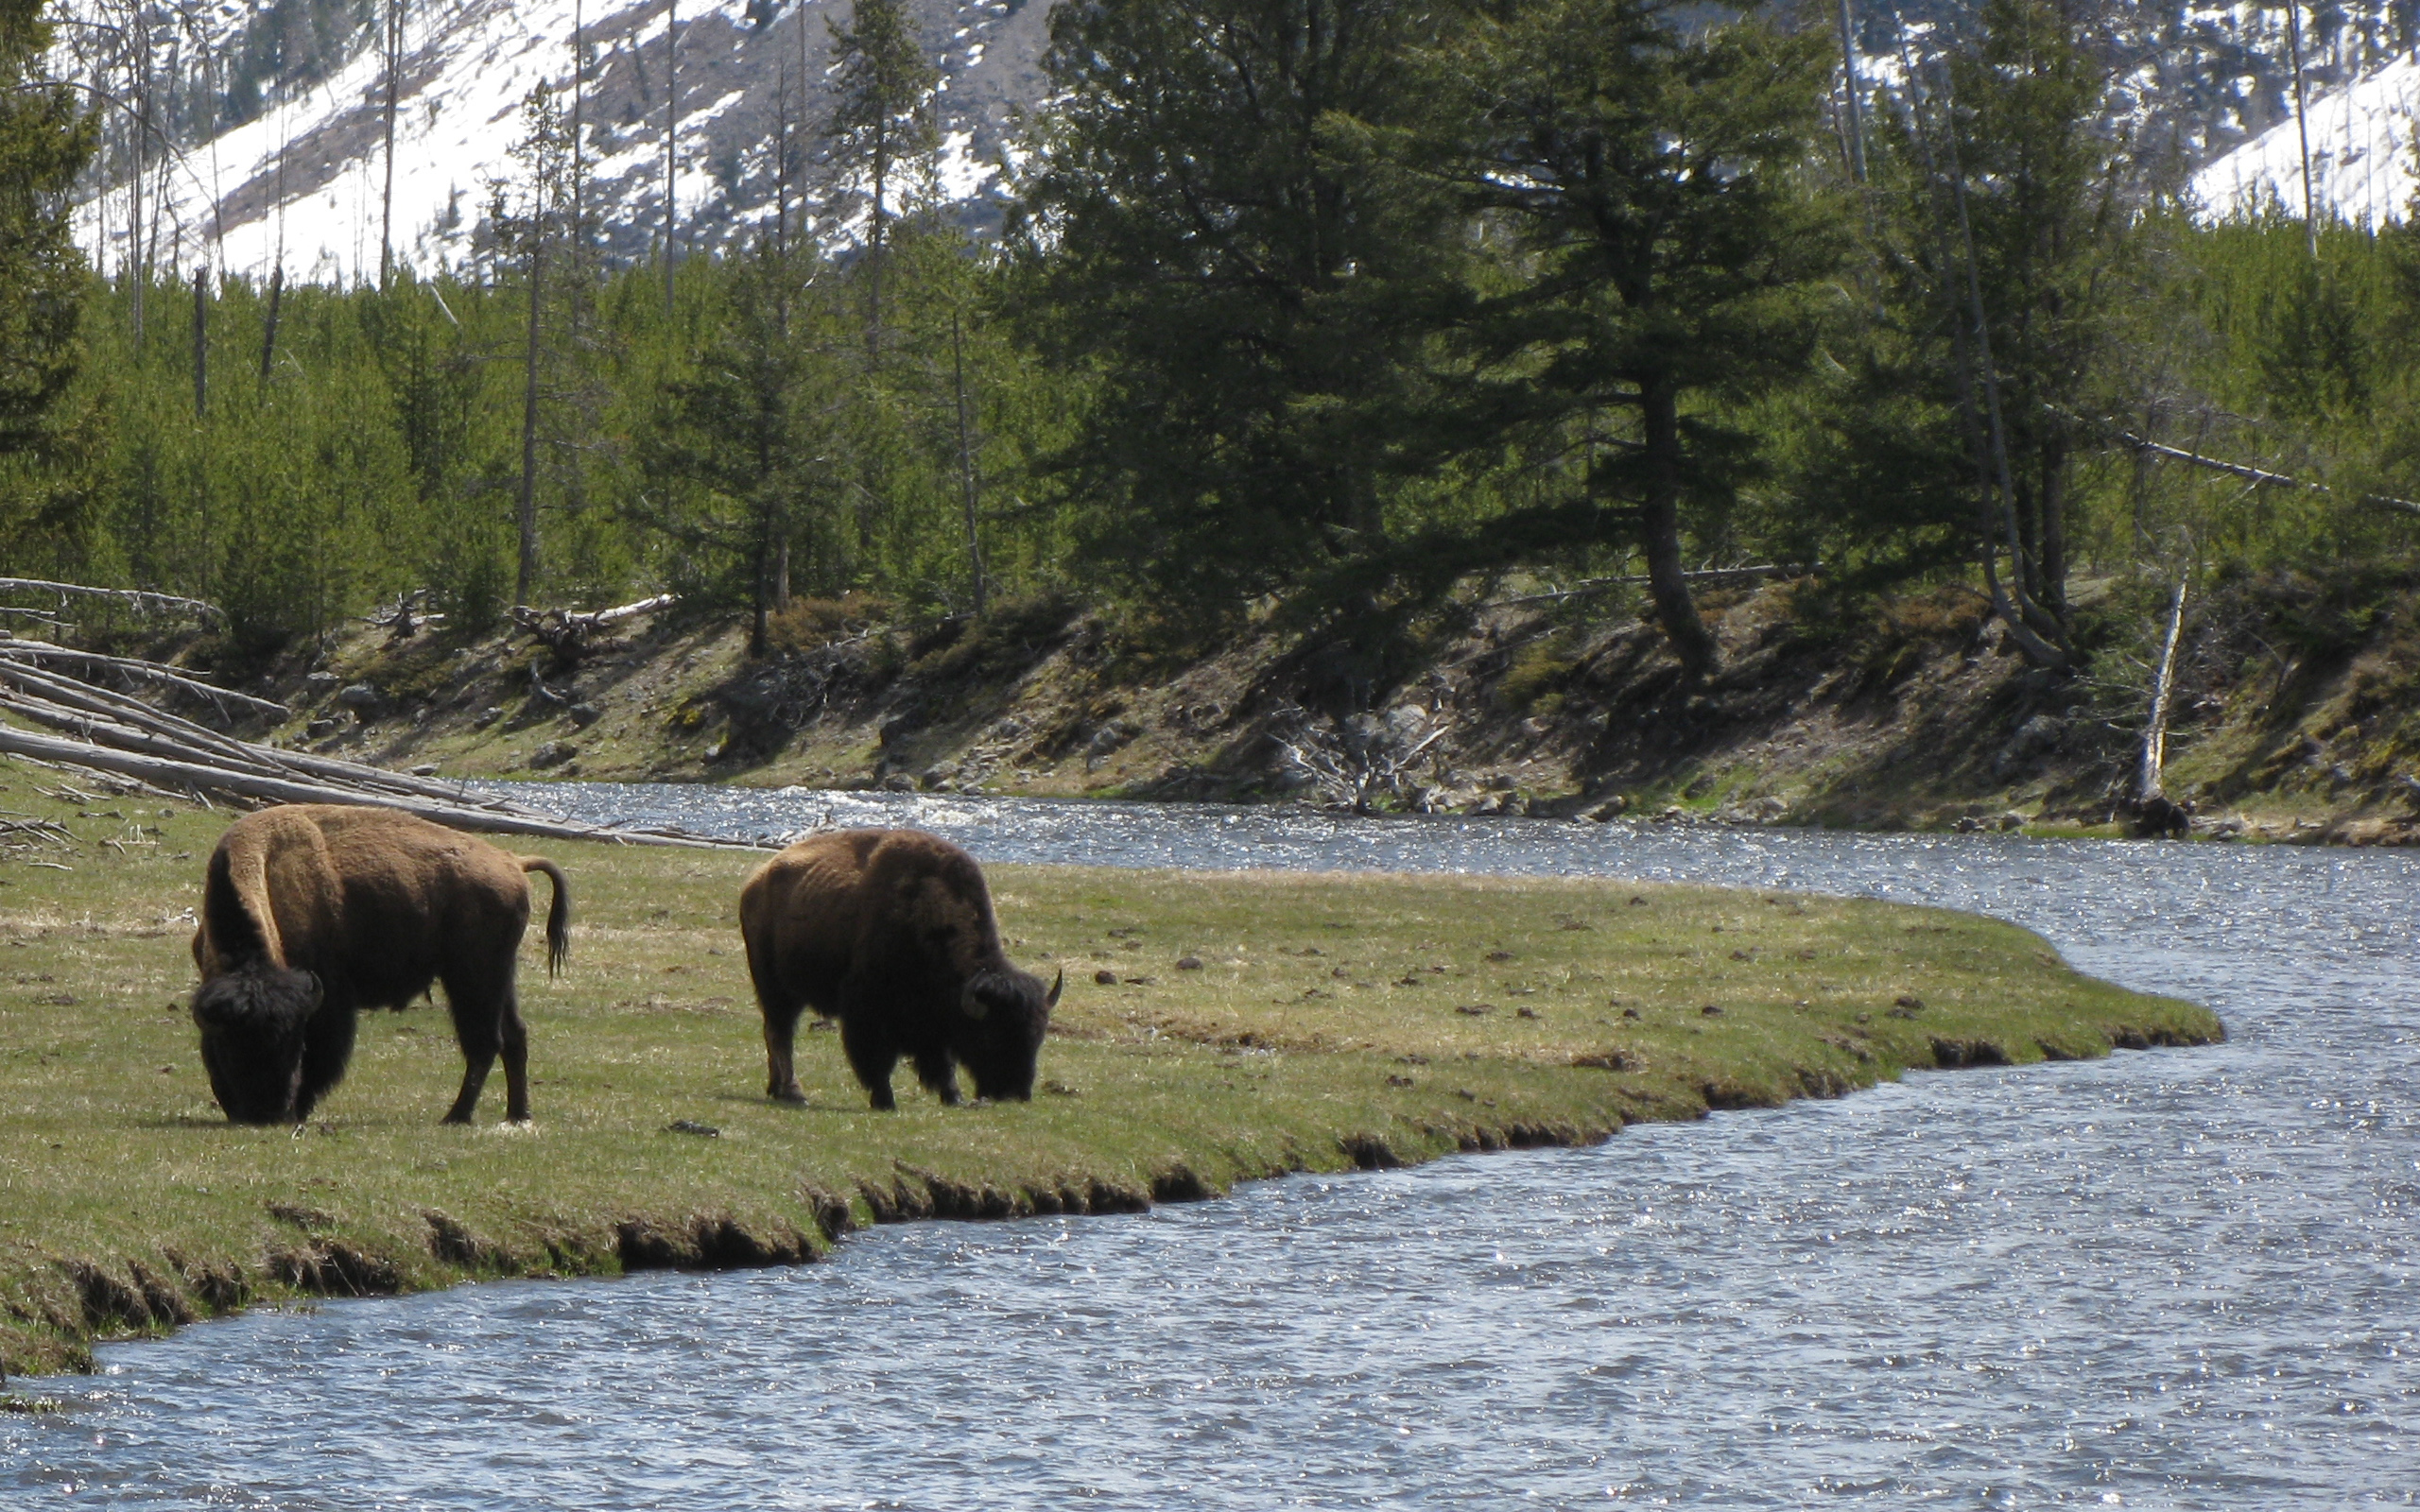 http://upload.wikimedia.org/wikipedia/commons/6/64/Two_bison_riverbend_Yellowstone.jpg